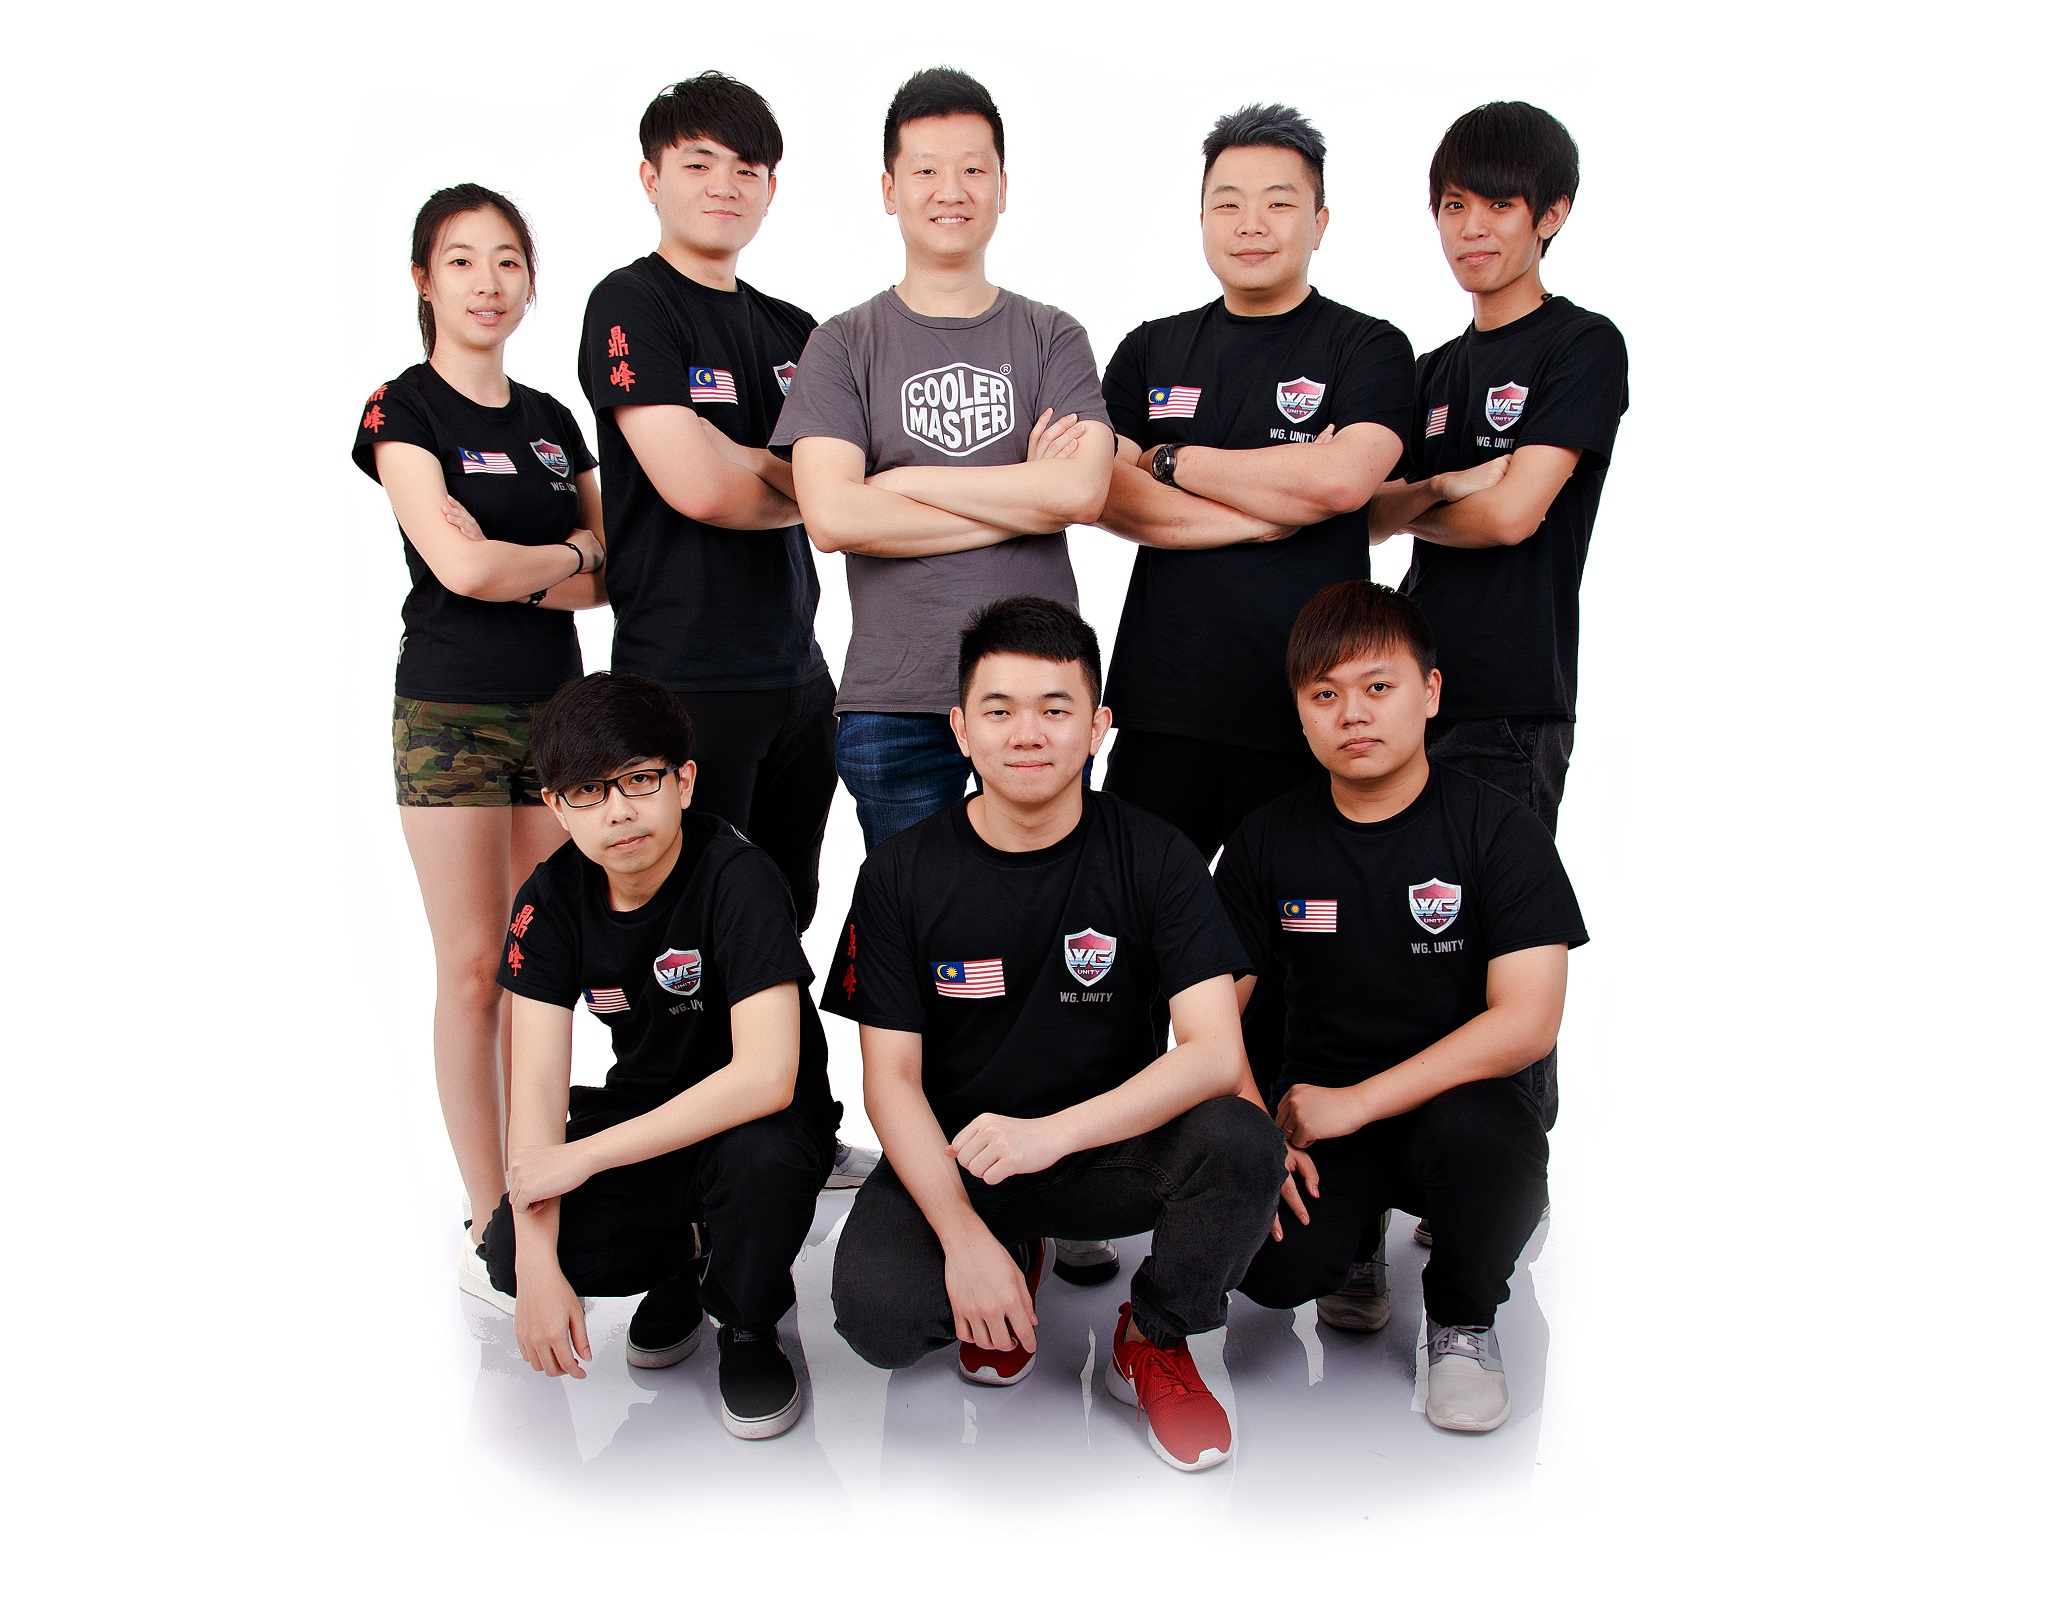 "Top Left to Right: Bonnie Ng (Manager), Tue ""ahfu"" Soon Chuan (Captain), Eng Kiat (Cooler Master Malaysia), Wayne Kok (Coach), Lai ""Ah Jit"" Jay Son Bottom Left to Right: Raphael 'KaNG' Chua, Neng ""Wenn."" Ee Wooi, Kam 'NaNa' Boon Seng"